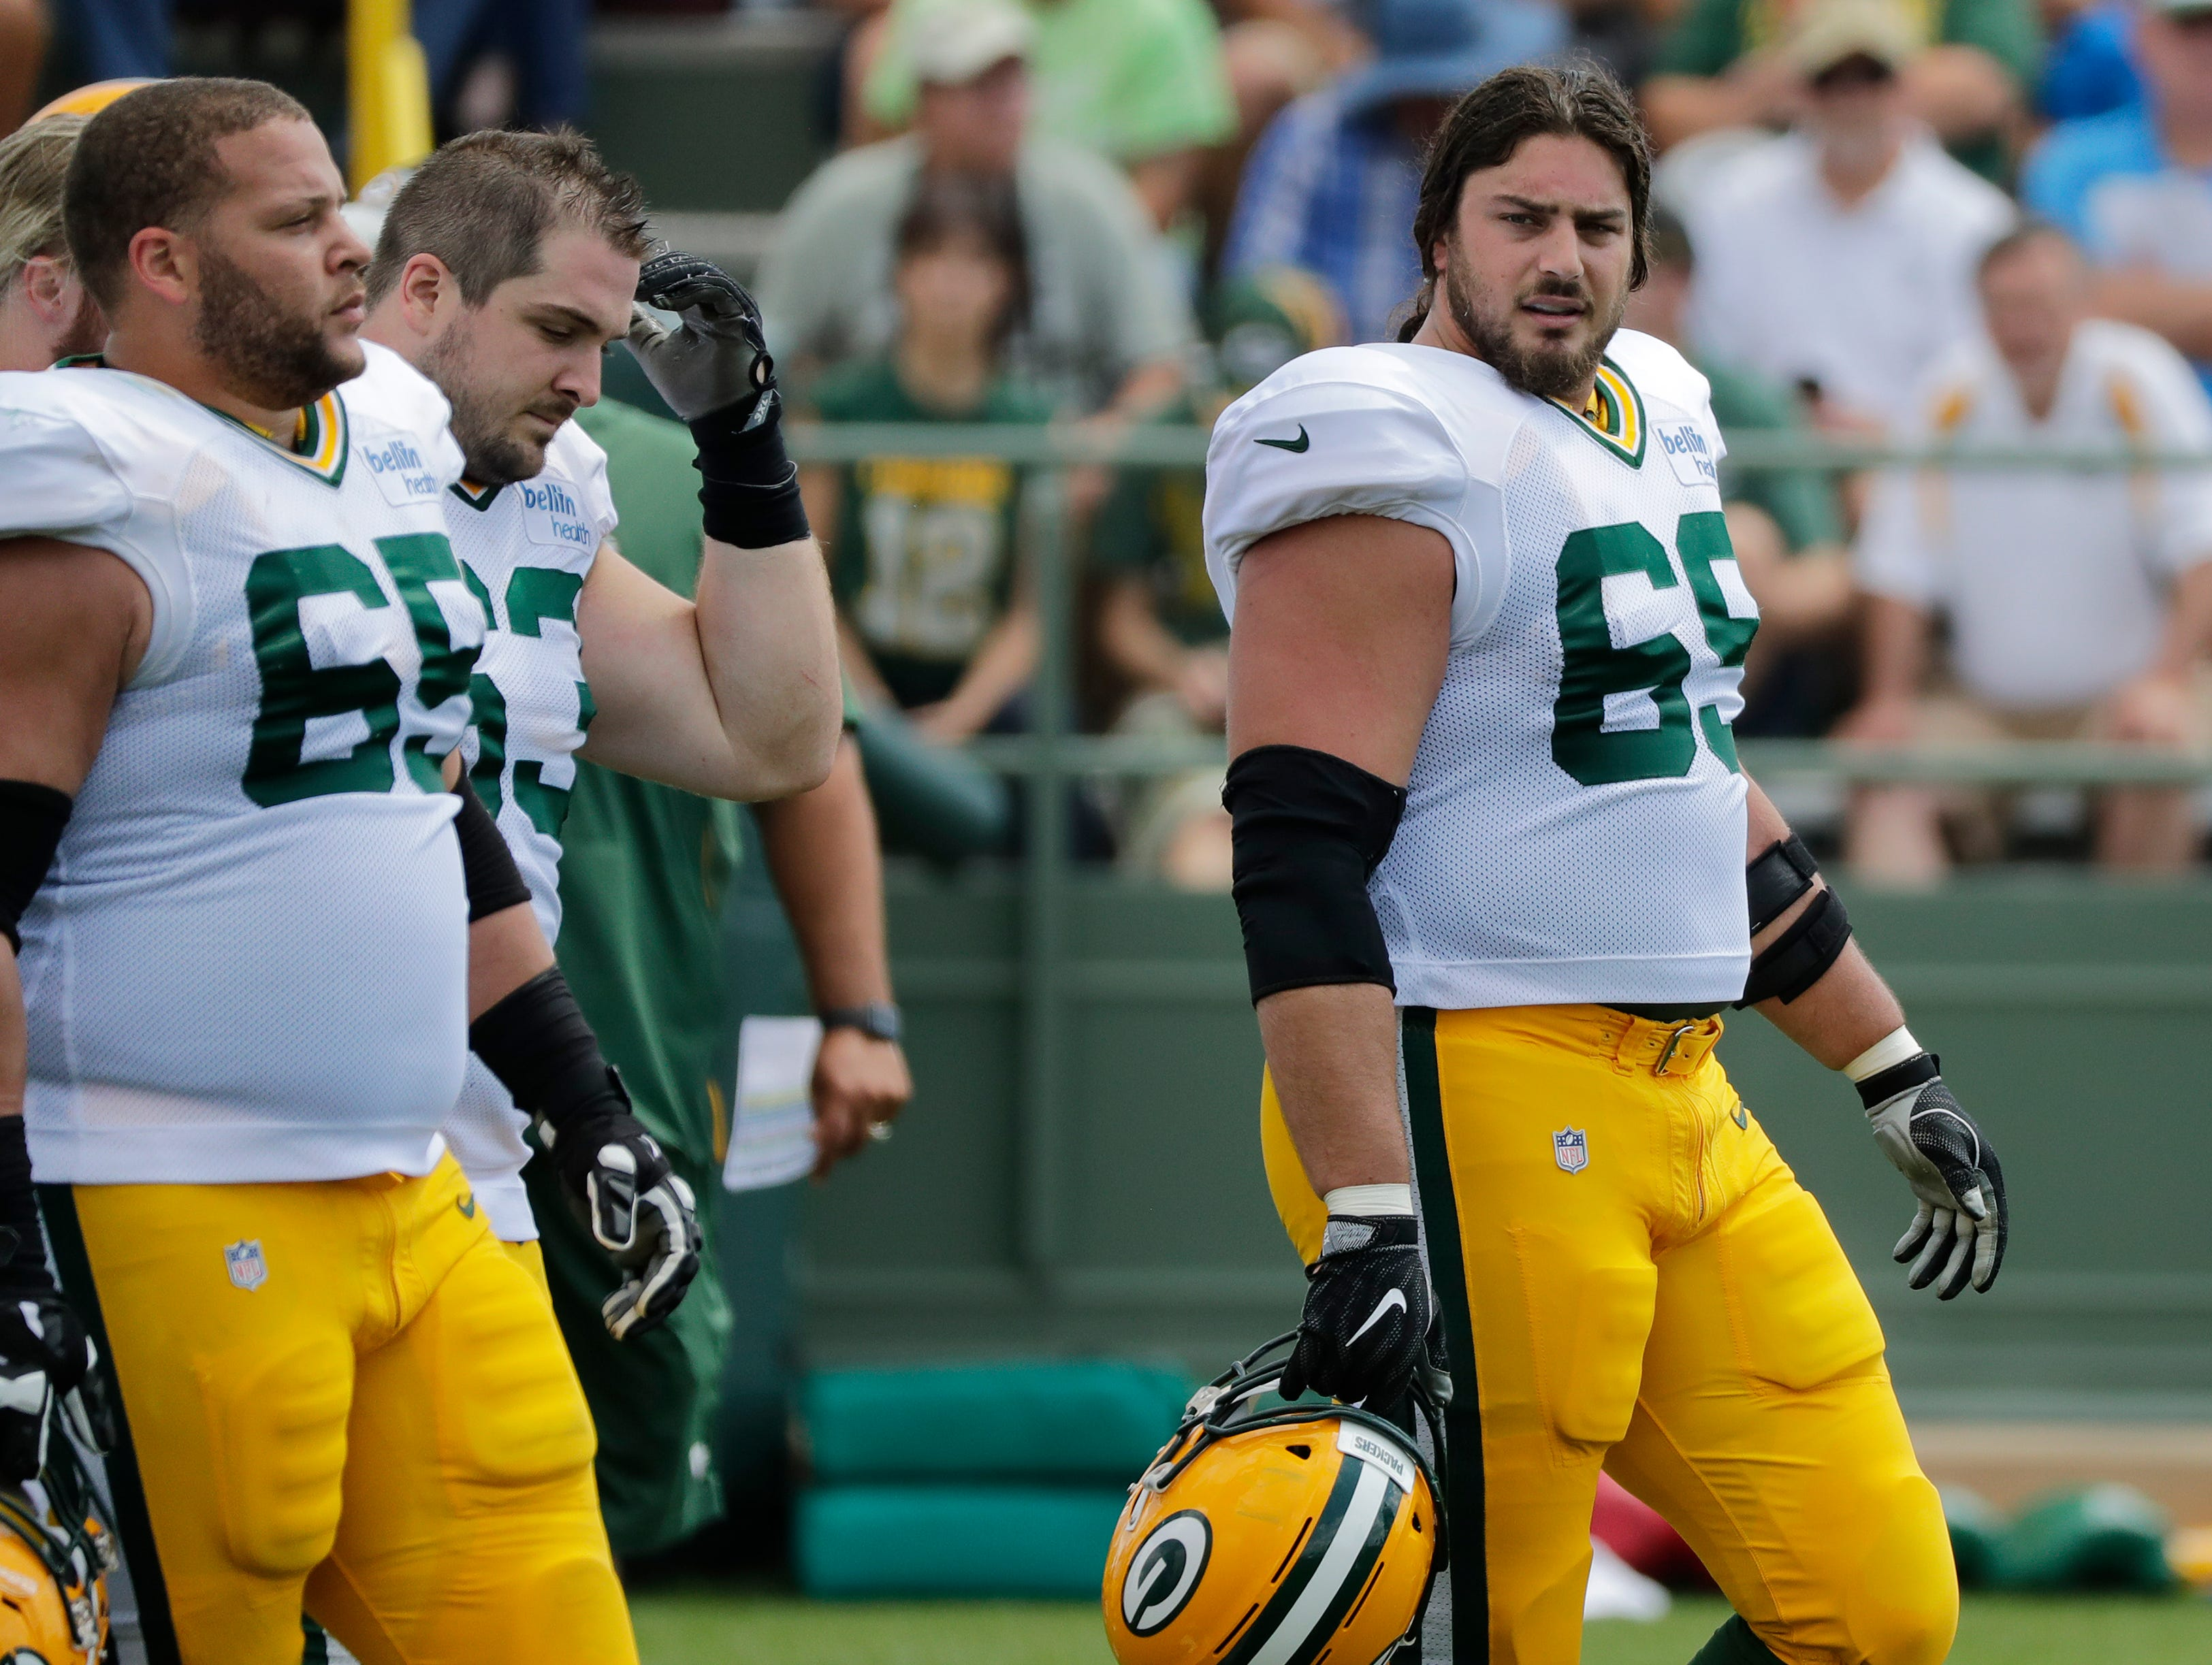 Green Bay Packers offensive tackle David Bakhtiari (69) during training camp practice at Ray Nitschke Field on Friday, August 3, 2018 in Ashwaubenon, Wis. 